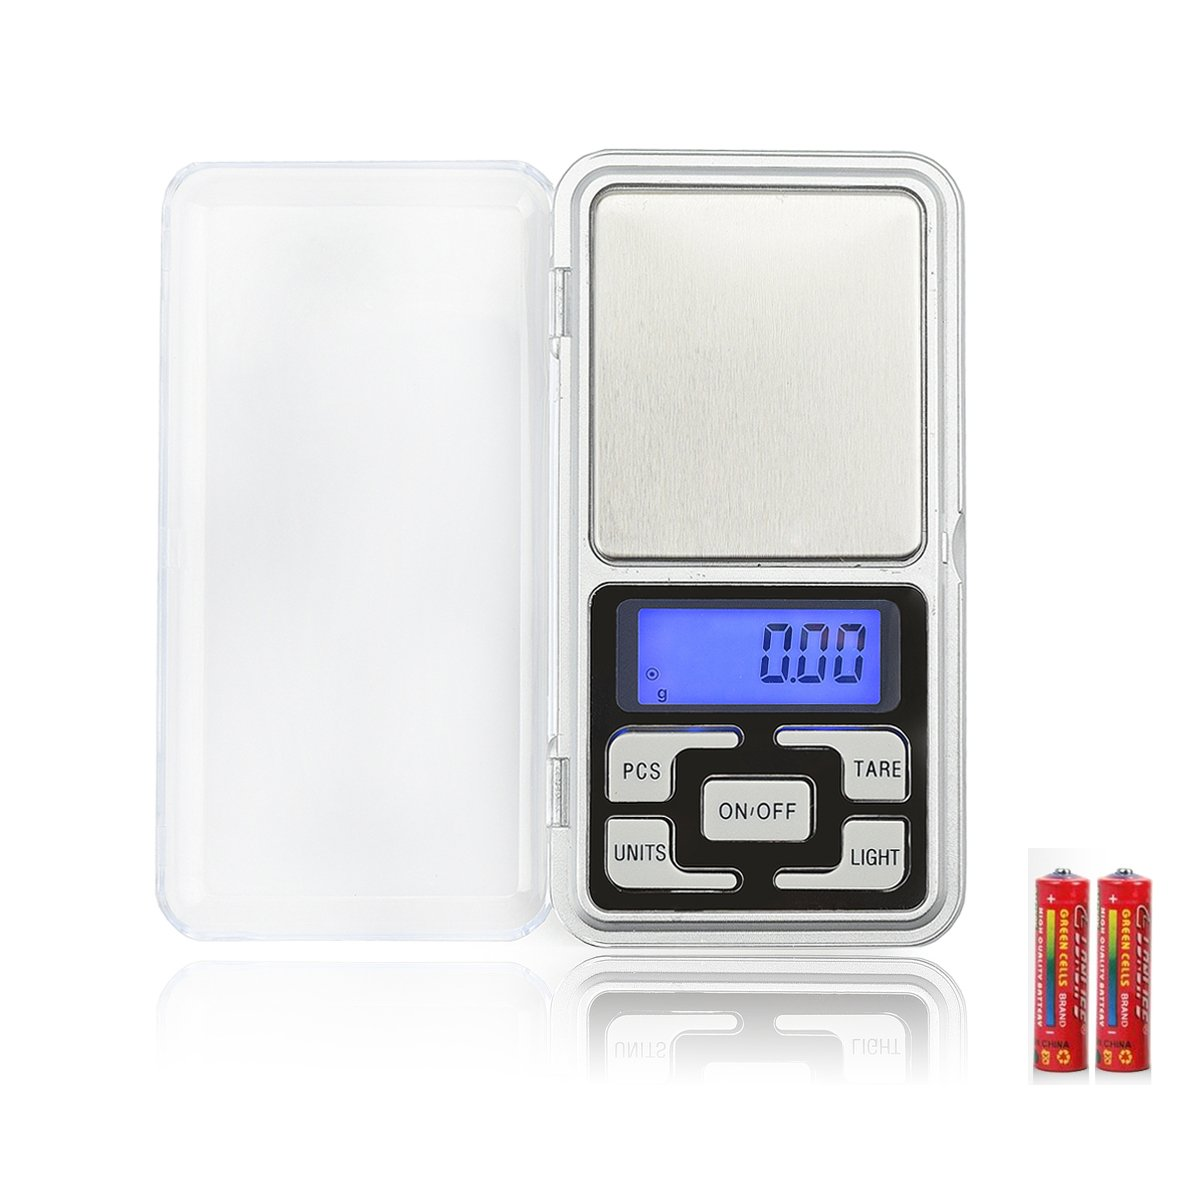 High Accuracy Mini Electronic Digital Pocket Scale Jewelry Diamond Gold Coin Calibration Weighing Balance 0.01-200g Portable 200G/0.01G Counting Function Blue LCD SIMERST